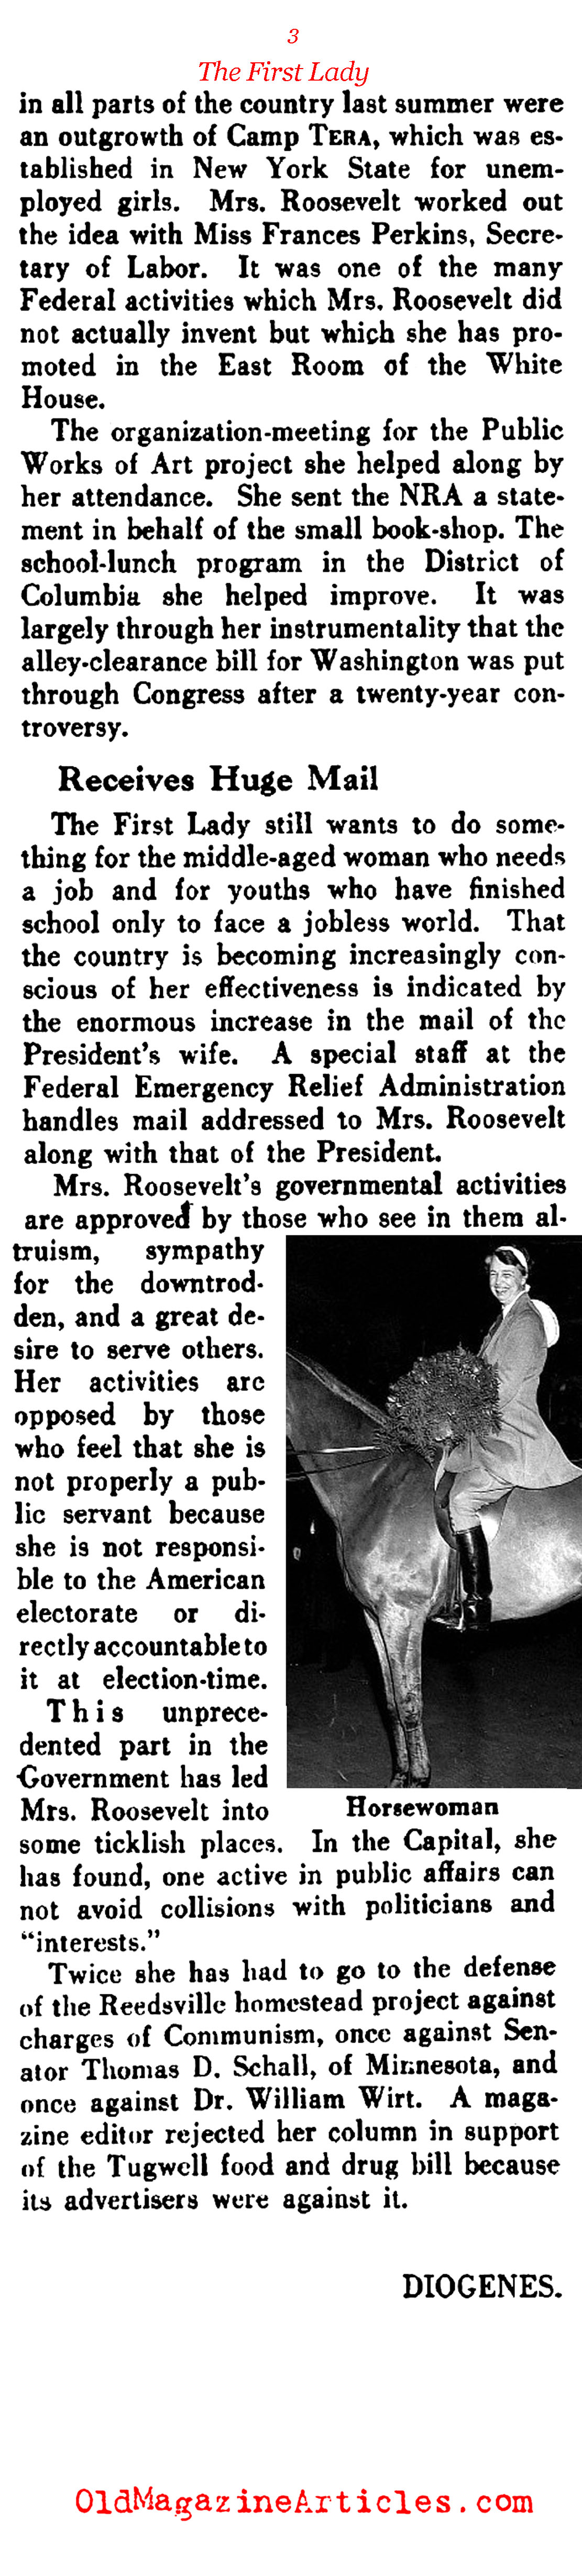 Eleanor Roosevelt Was a Very Different First Lady  (The Literary Digest, 1933)